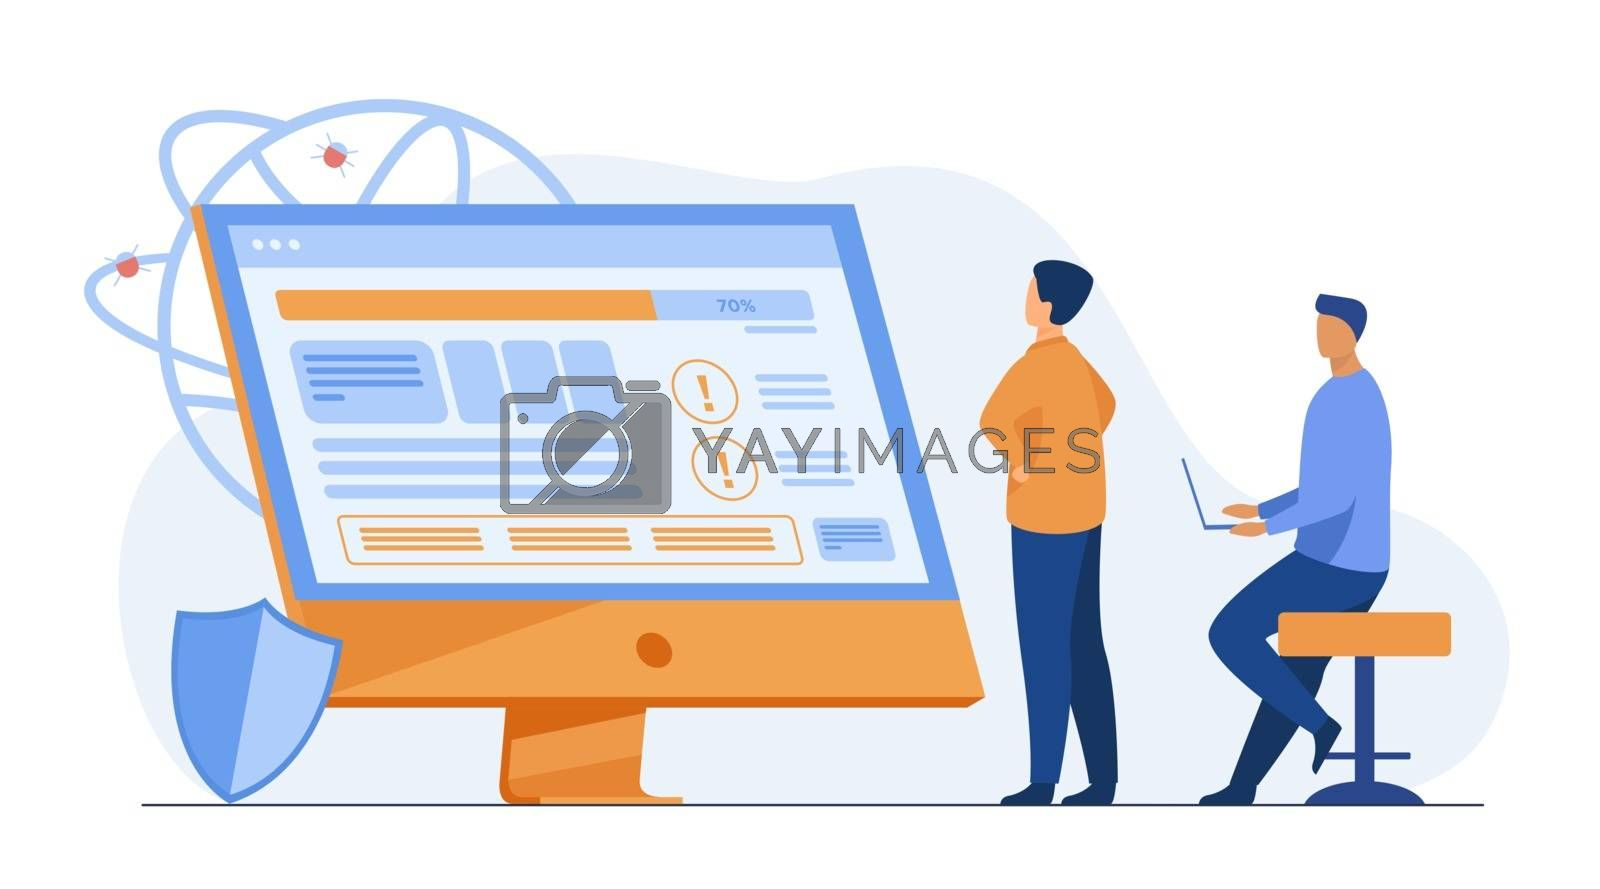 Developers testing software. Man with laptops watching infographics, fixing bugs, using computer. Vector illustration for application, programming, coding concept